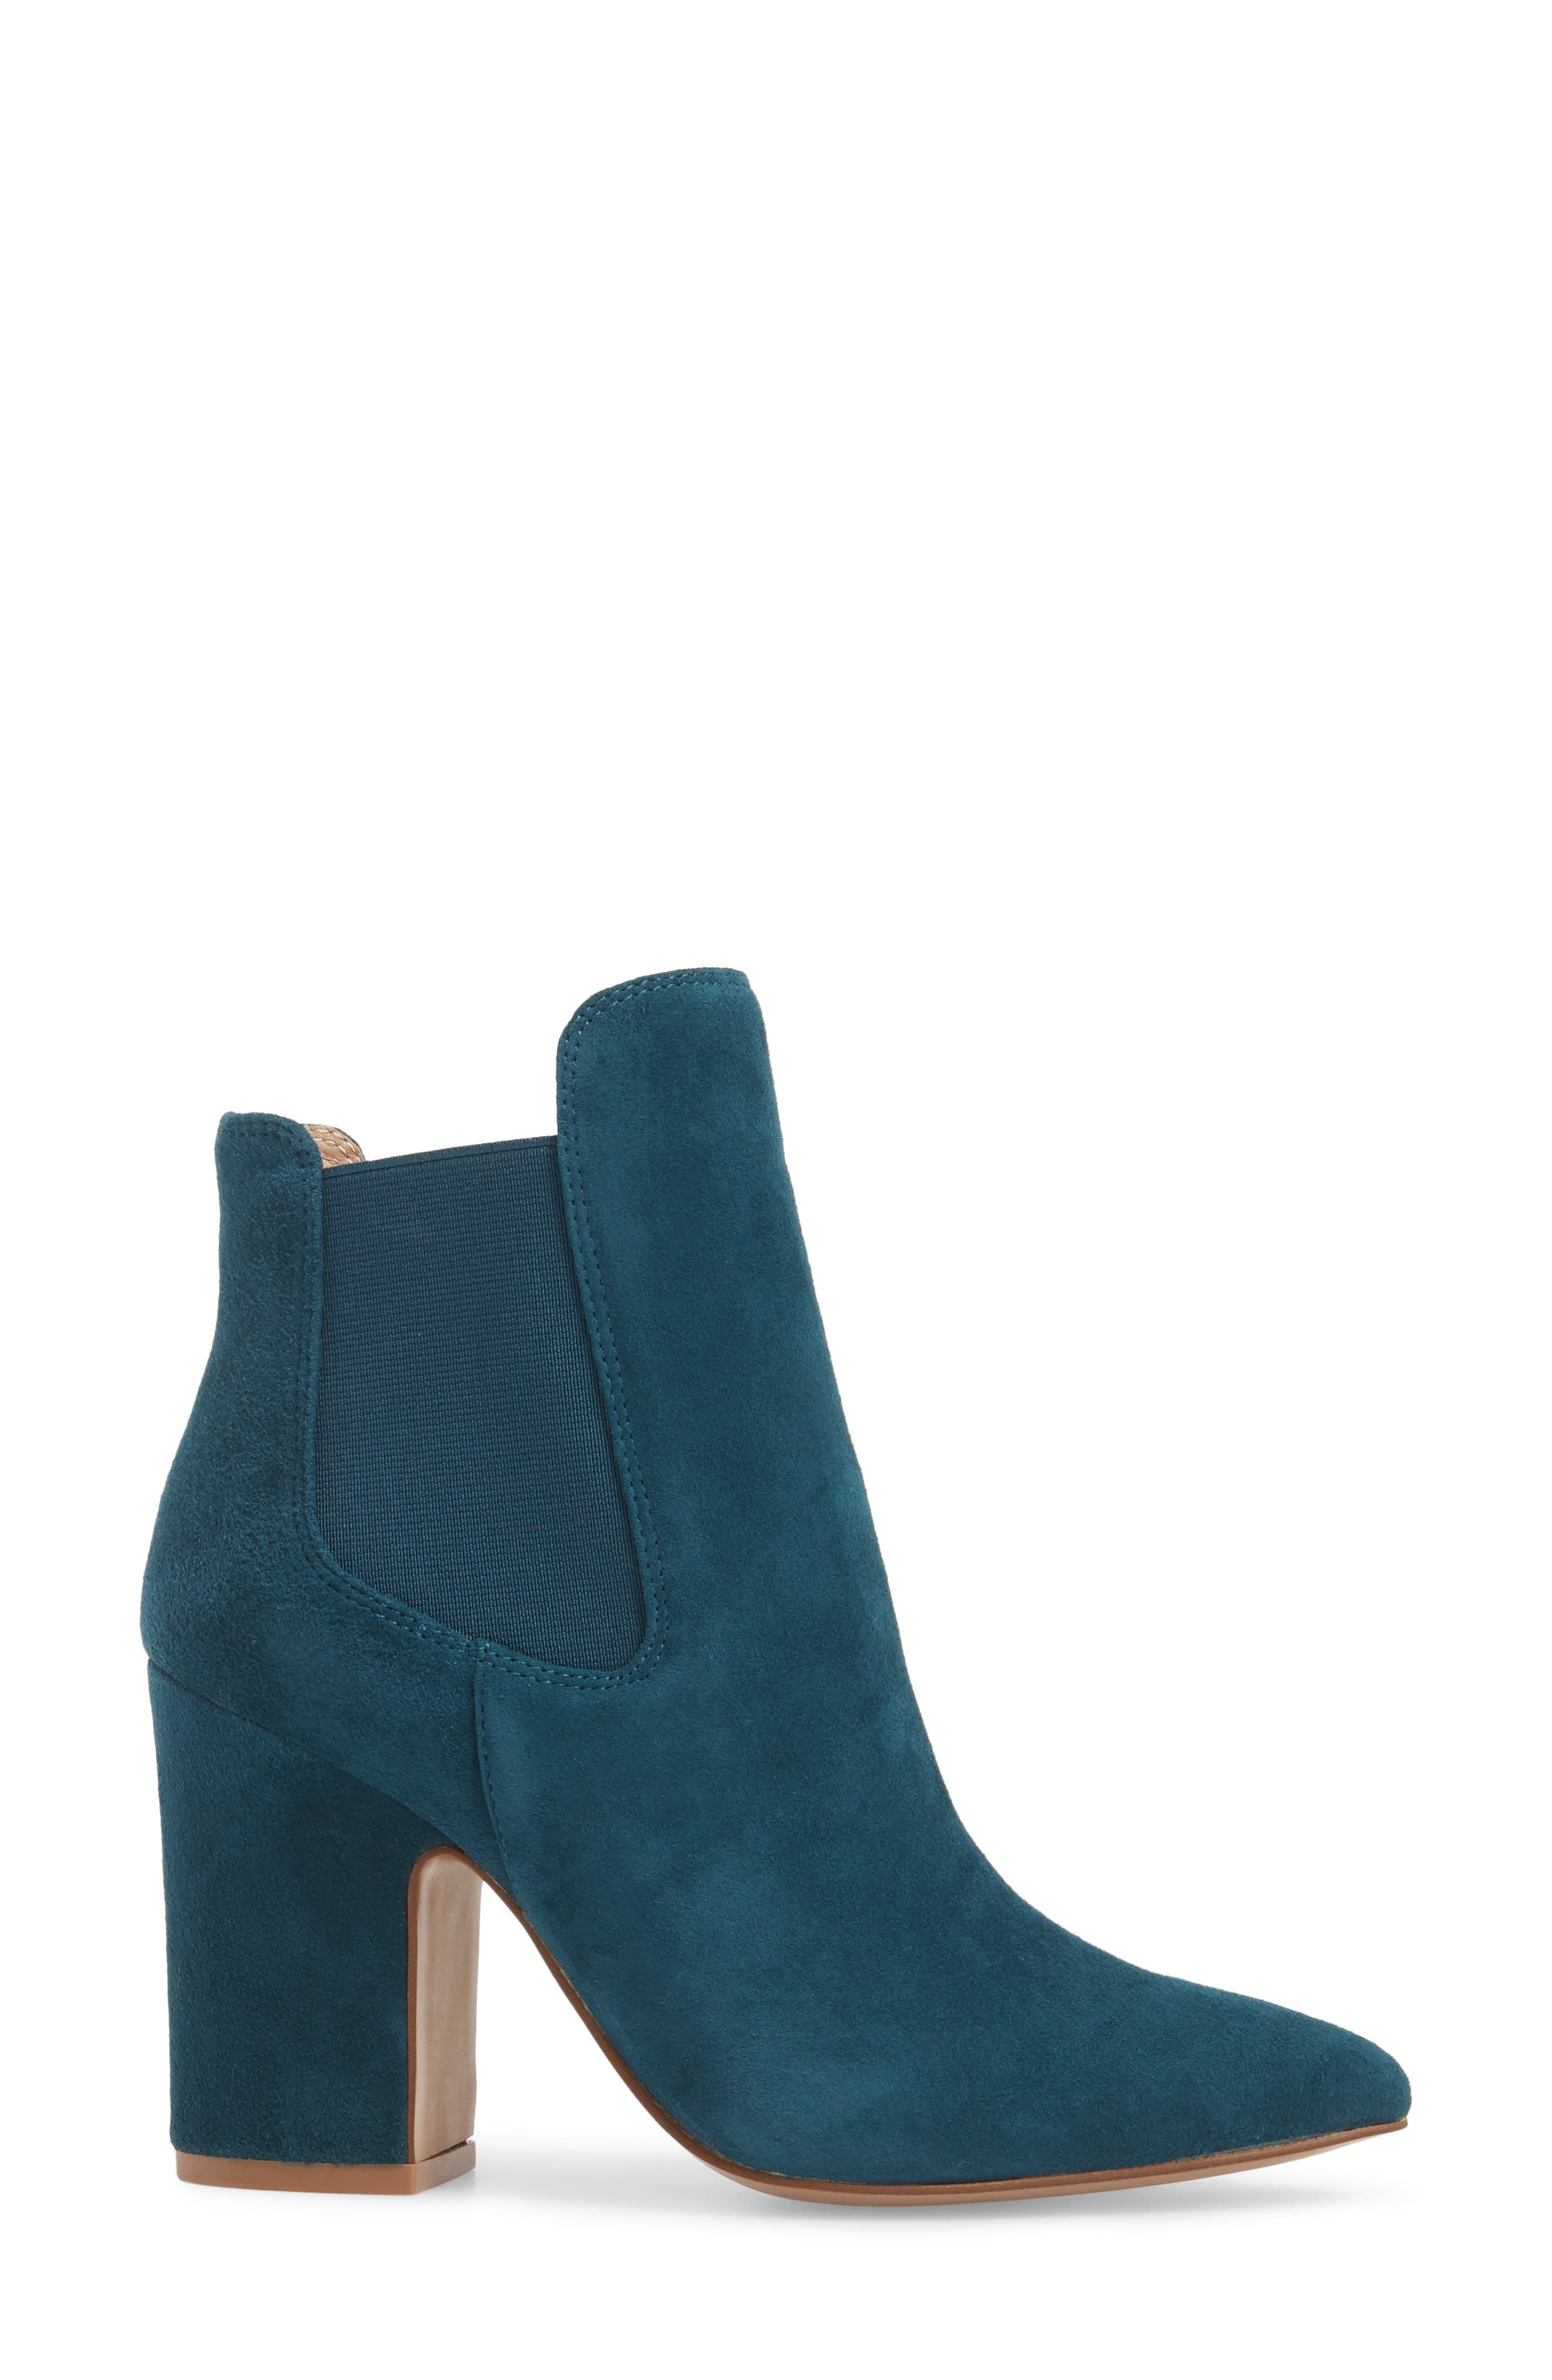 Starlight Bootie,                             Alternate thumbnail 3, color,                             Teal Suede